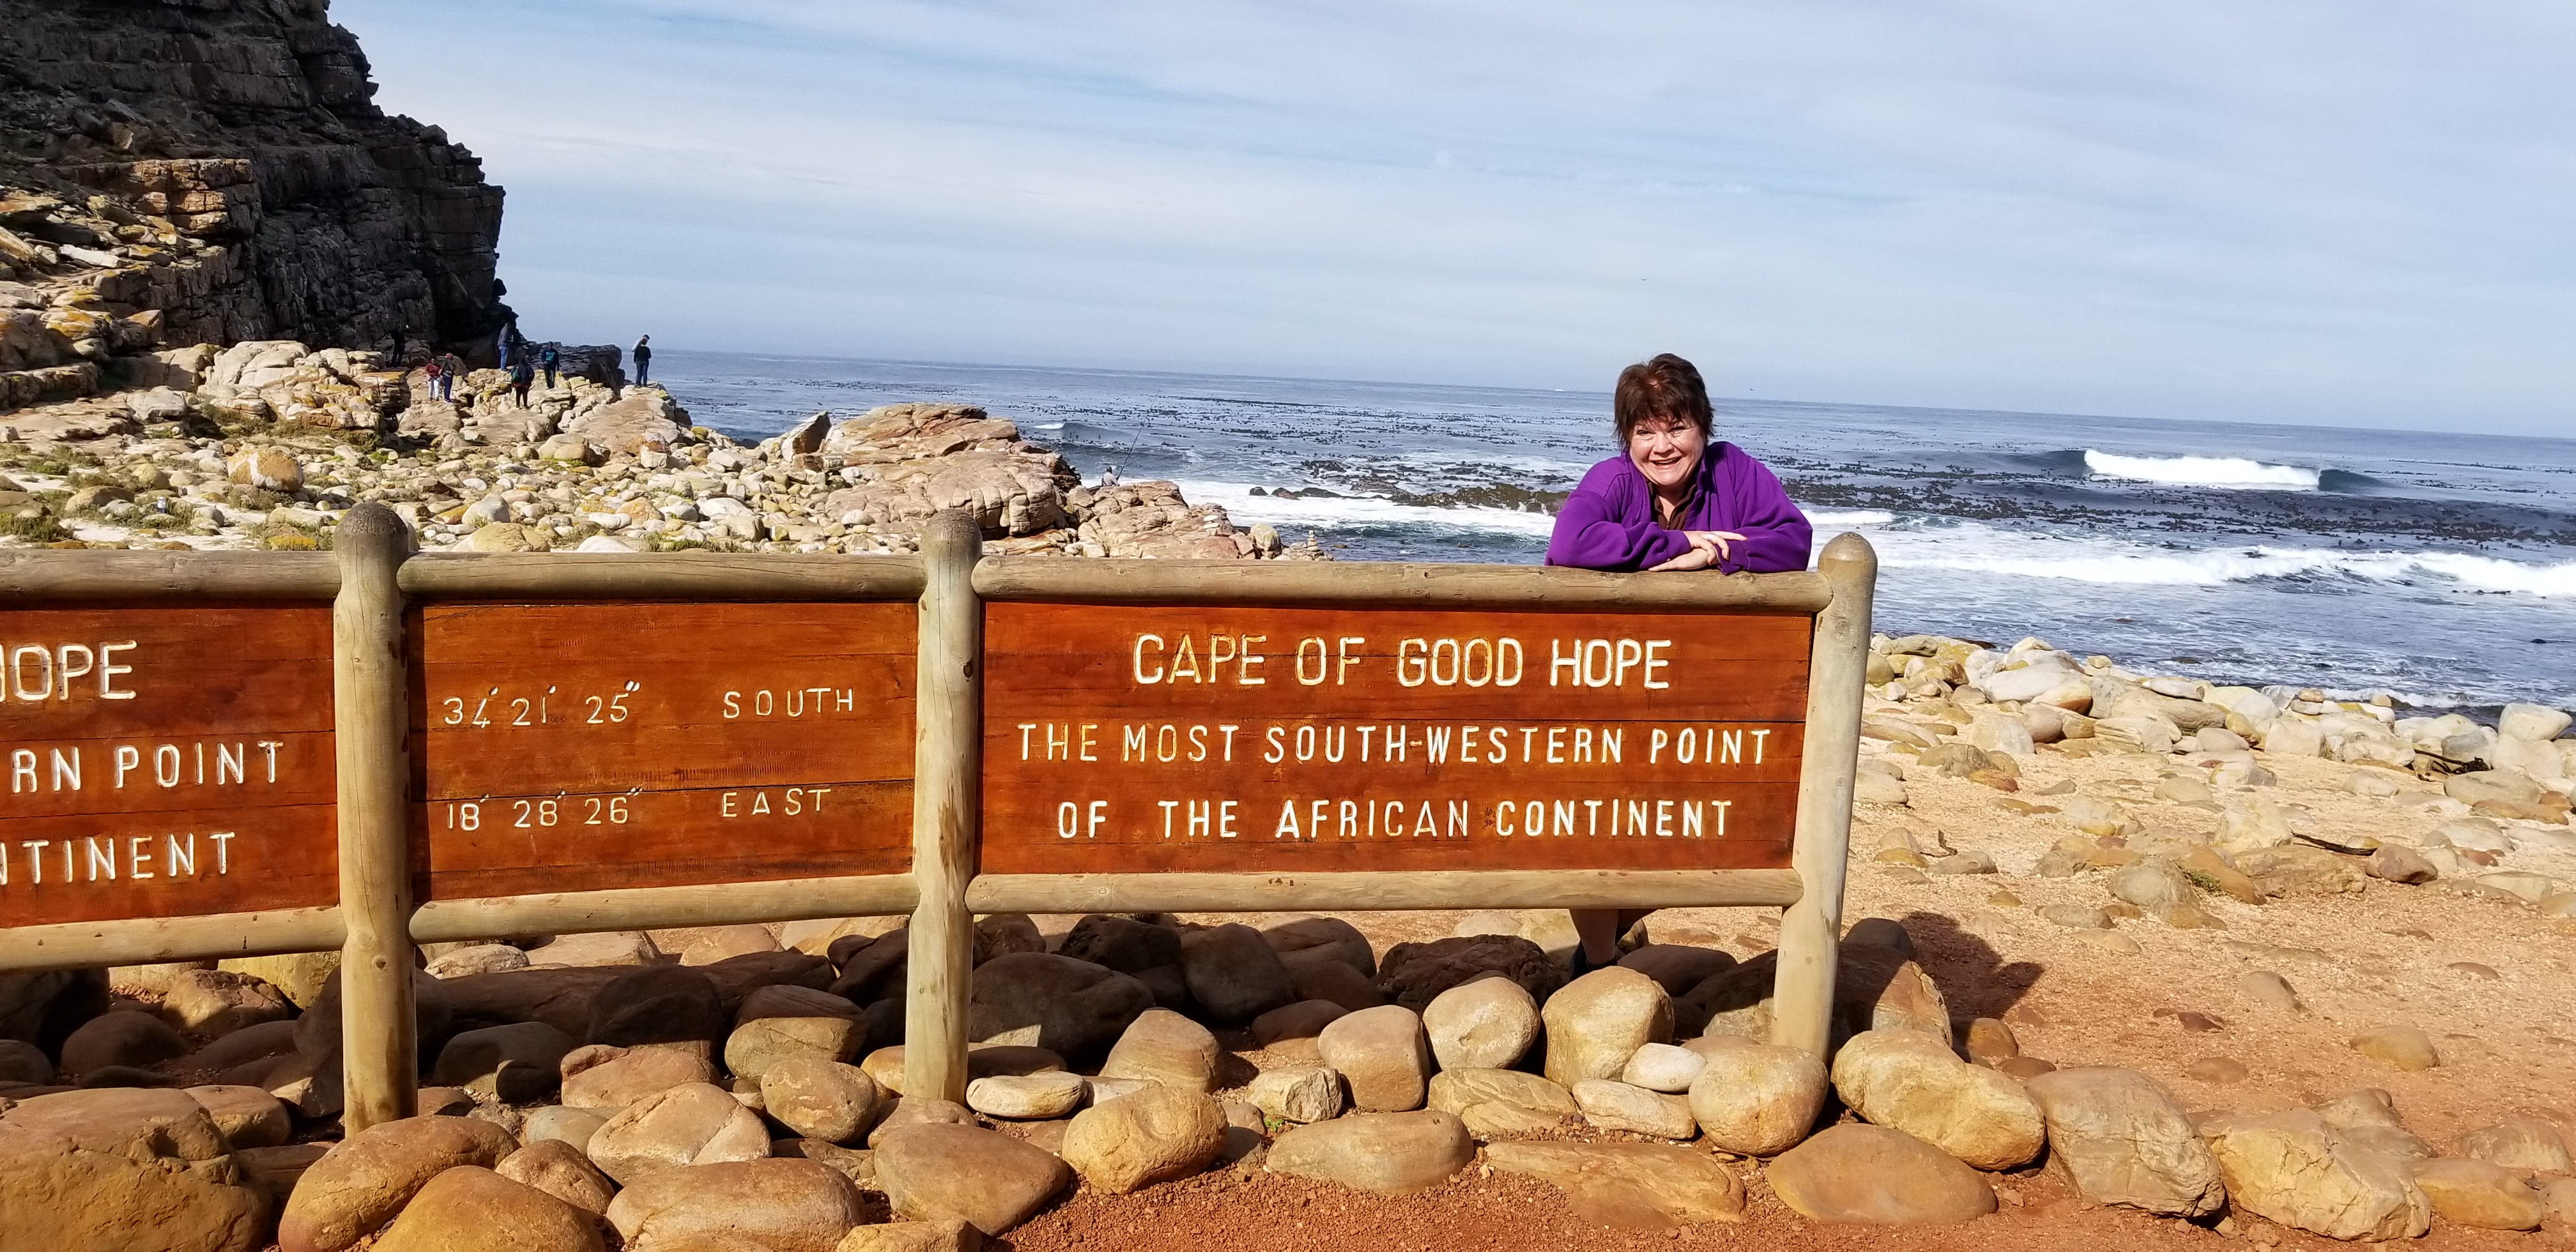 Marcy at Cape of Good Hope